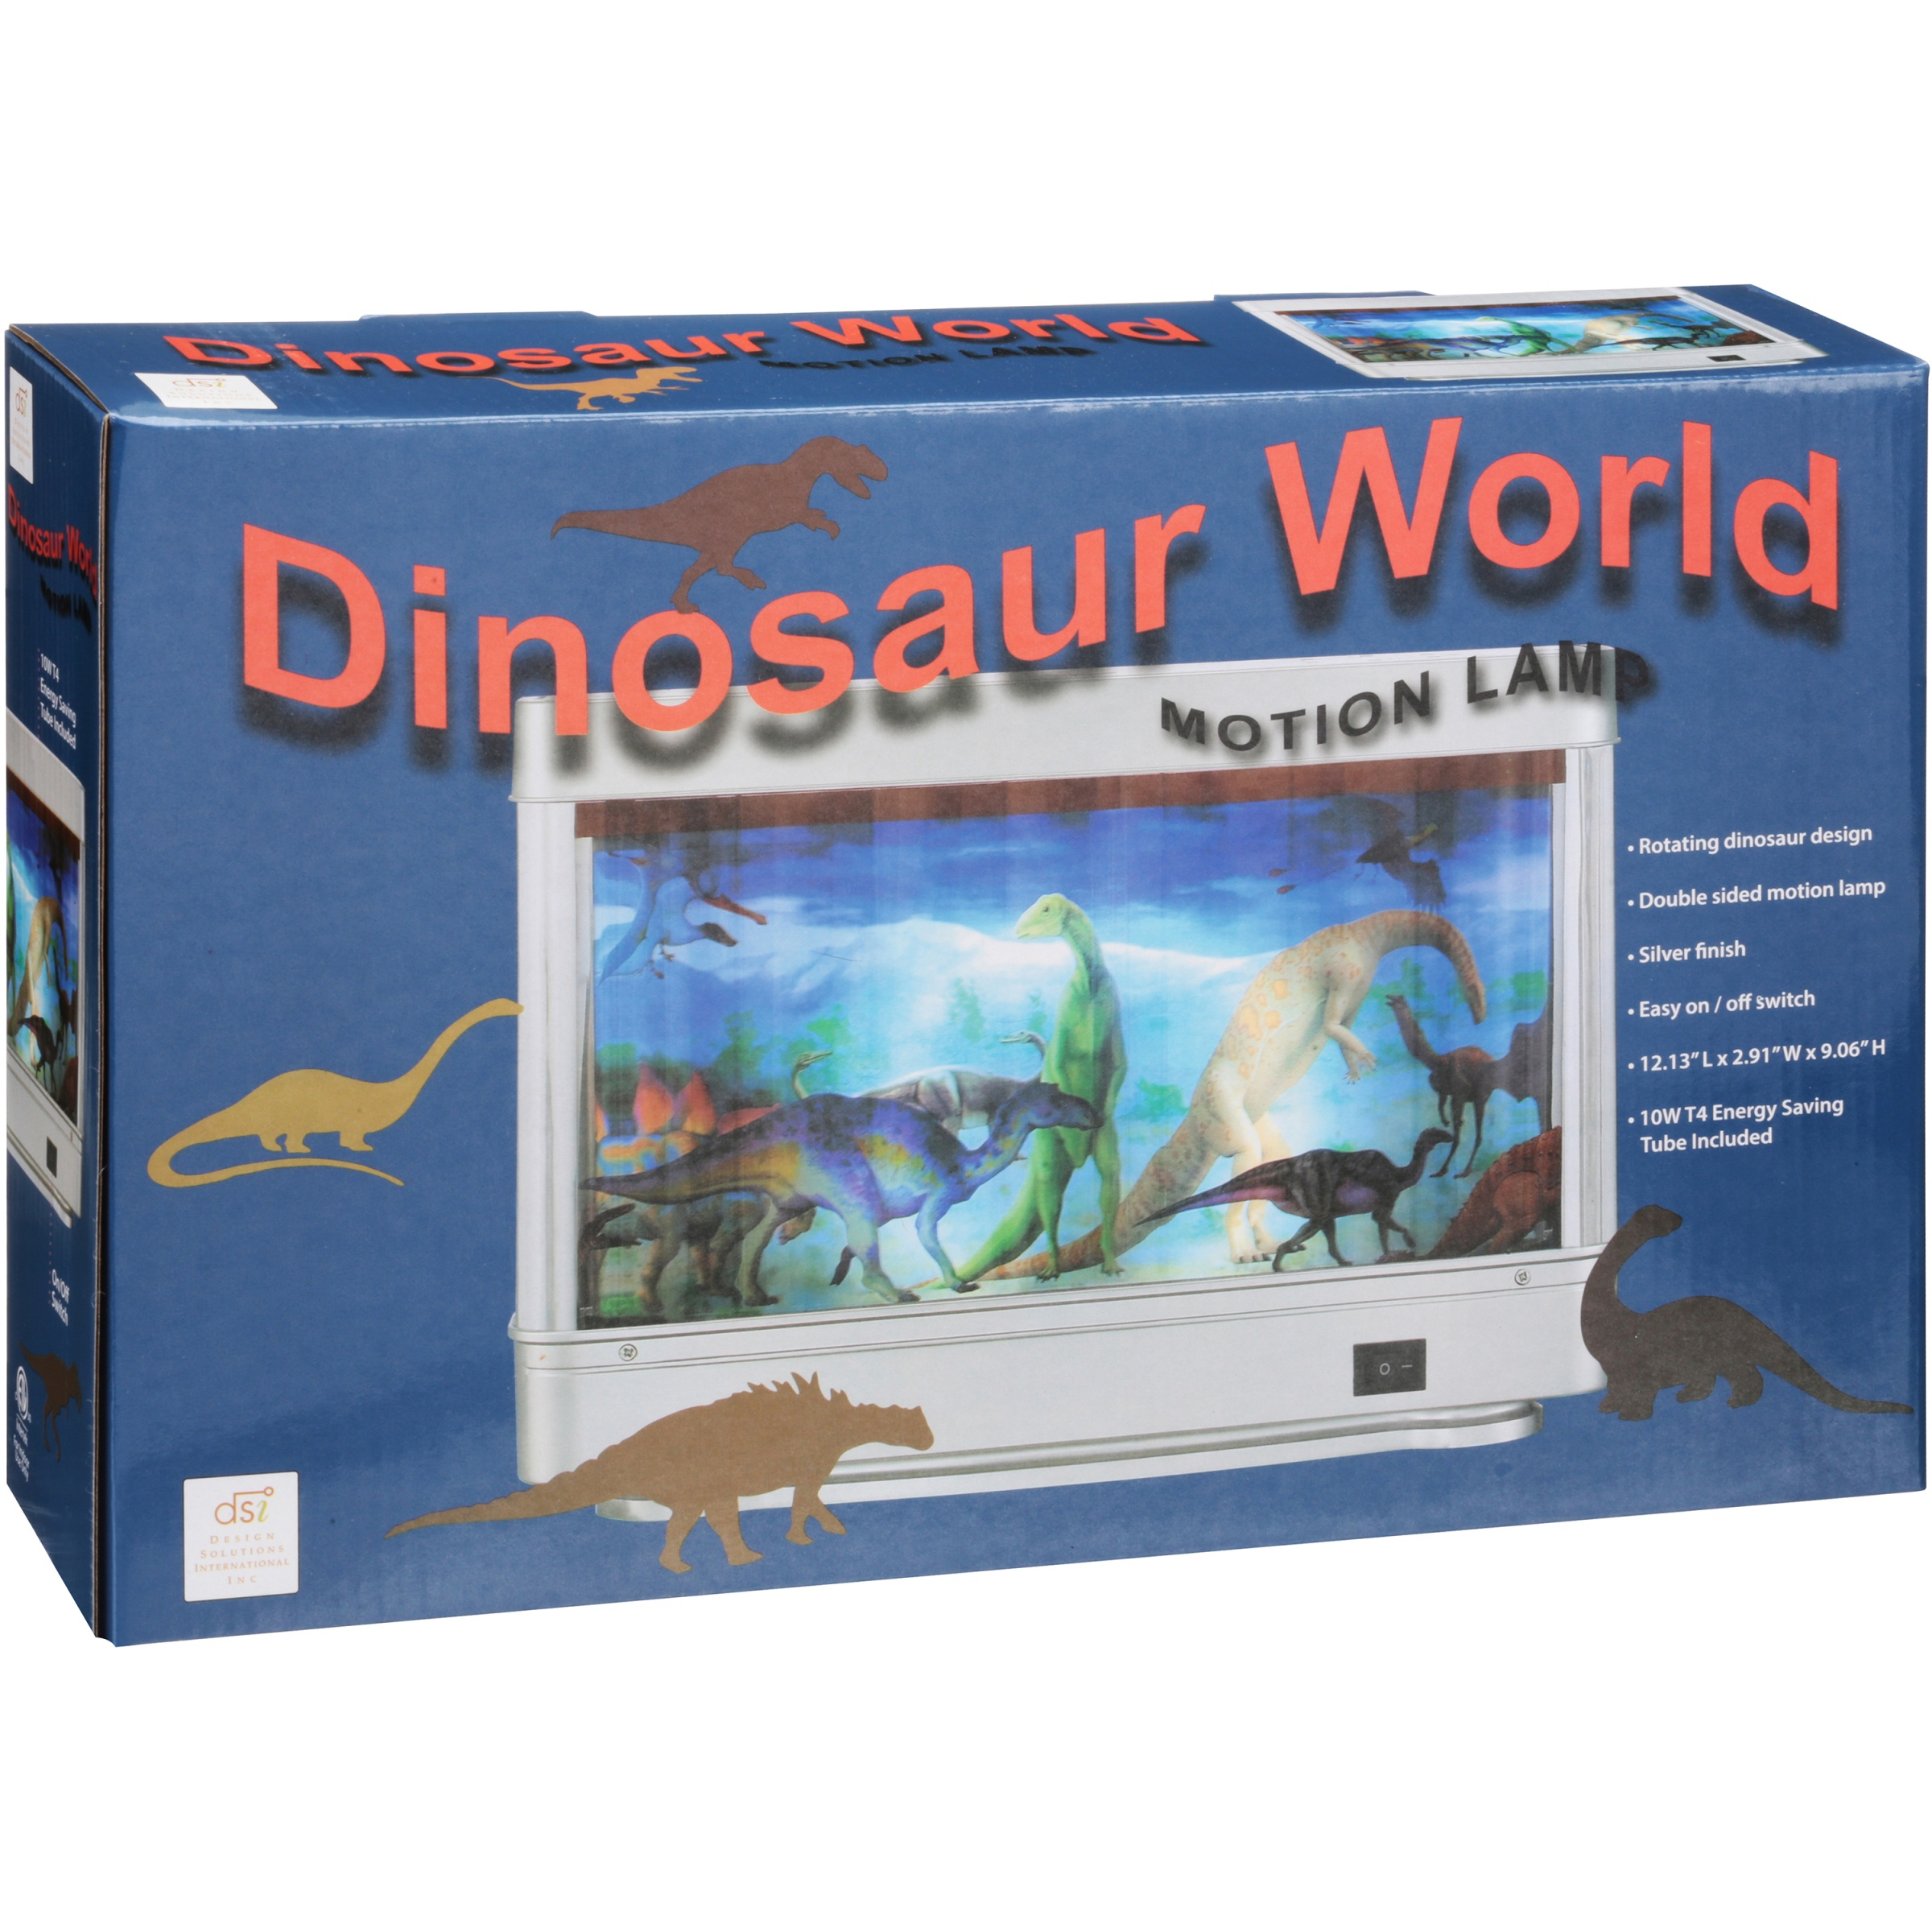 Dinosaur World Motion Lamp Portable Bedroom Lighting Nightlight Kids